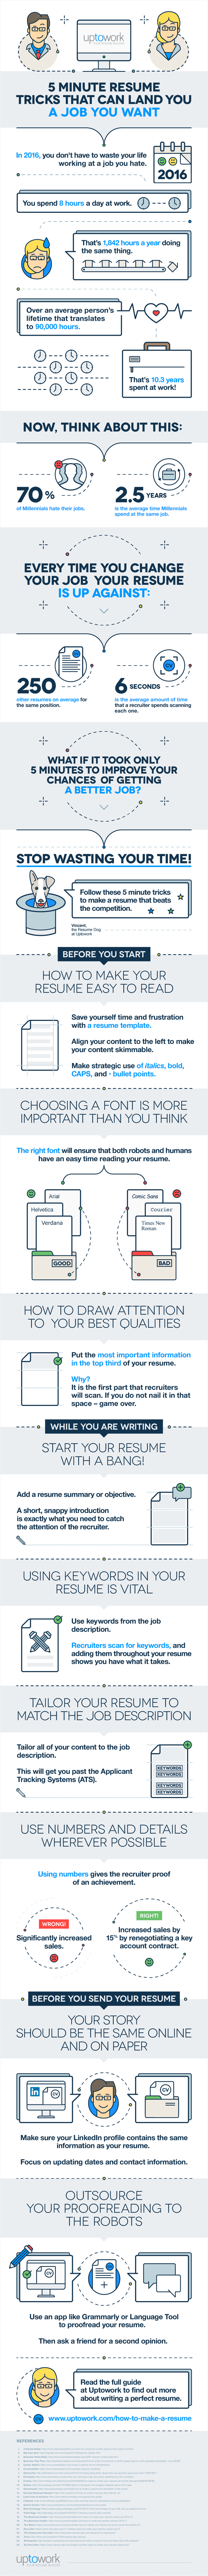 the five minute hacks to improve your resume infographic presents 5 minute tricks to help